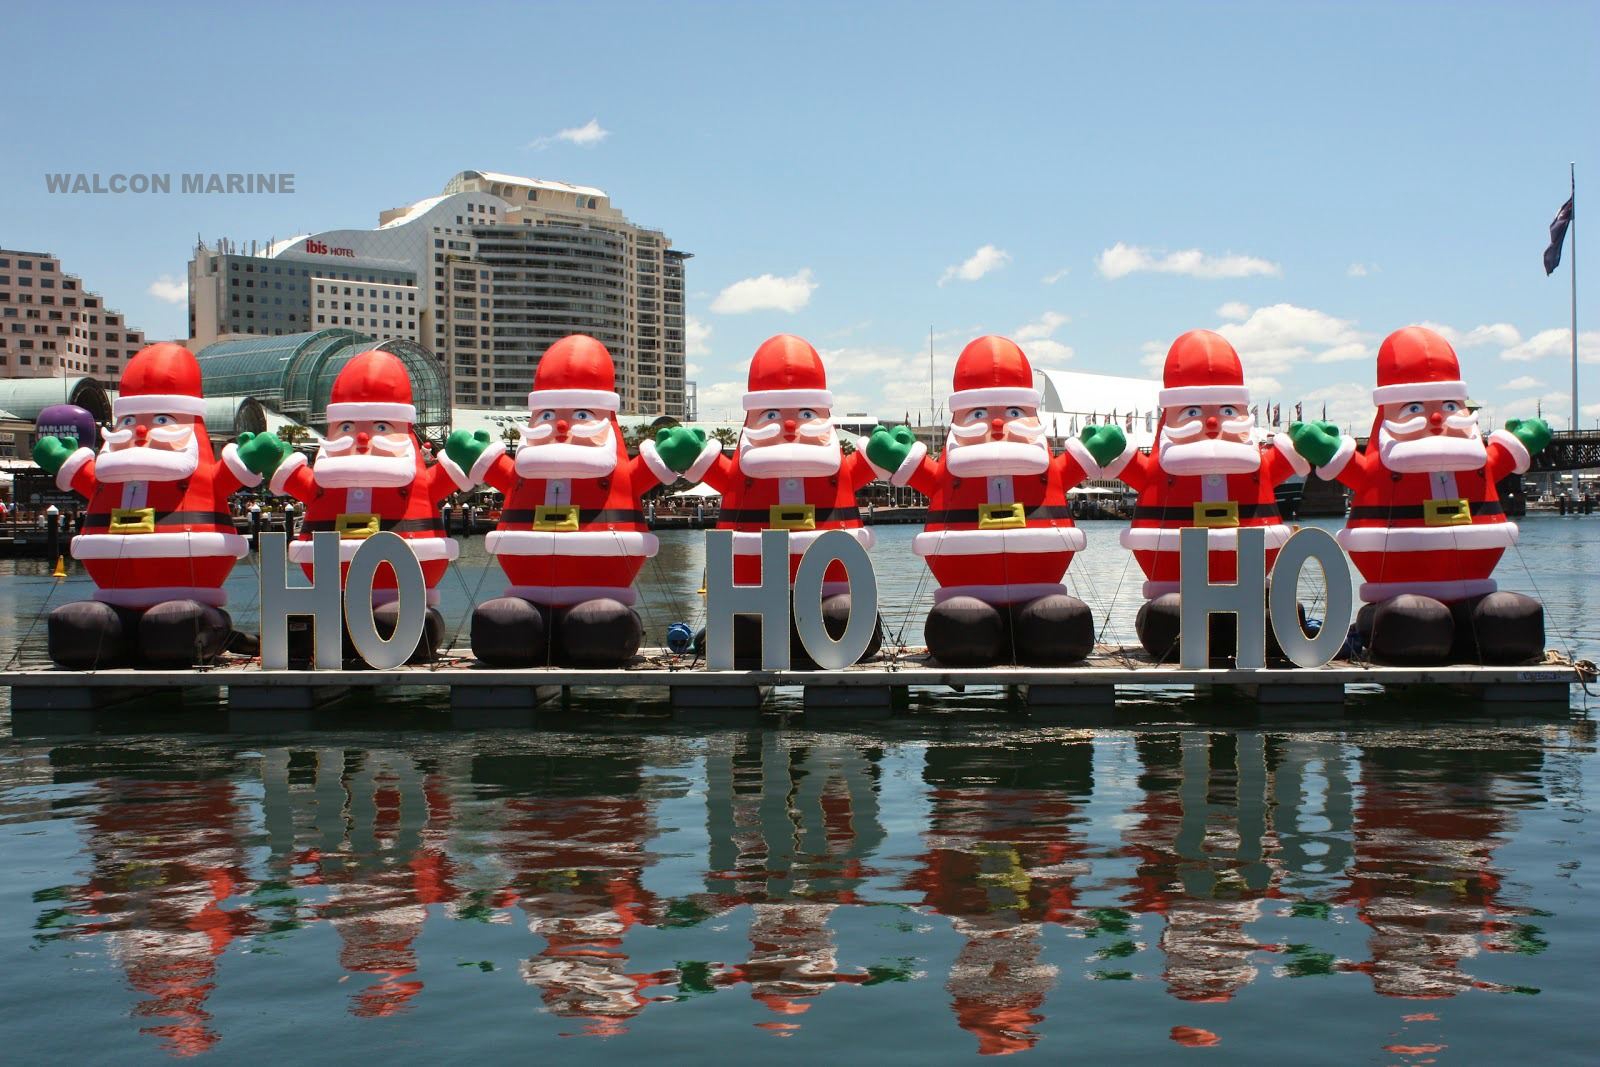 Floating santa stage by Walcon Marine